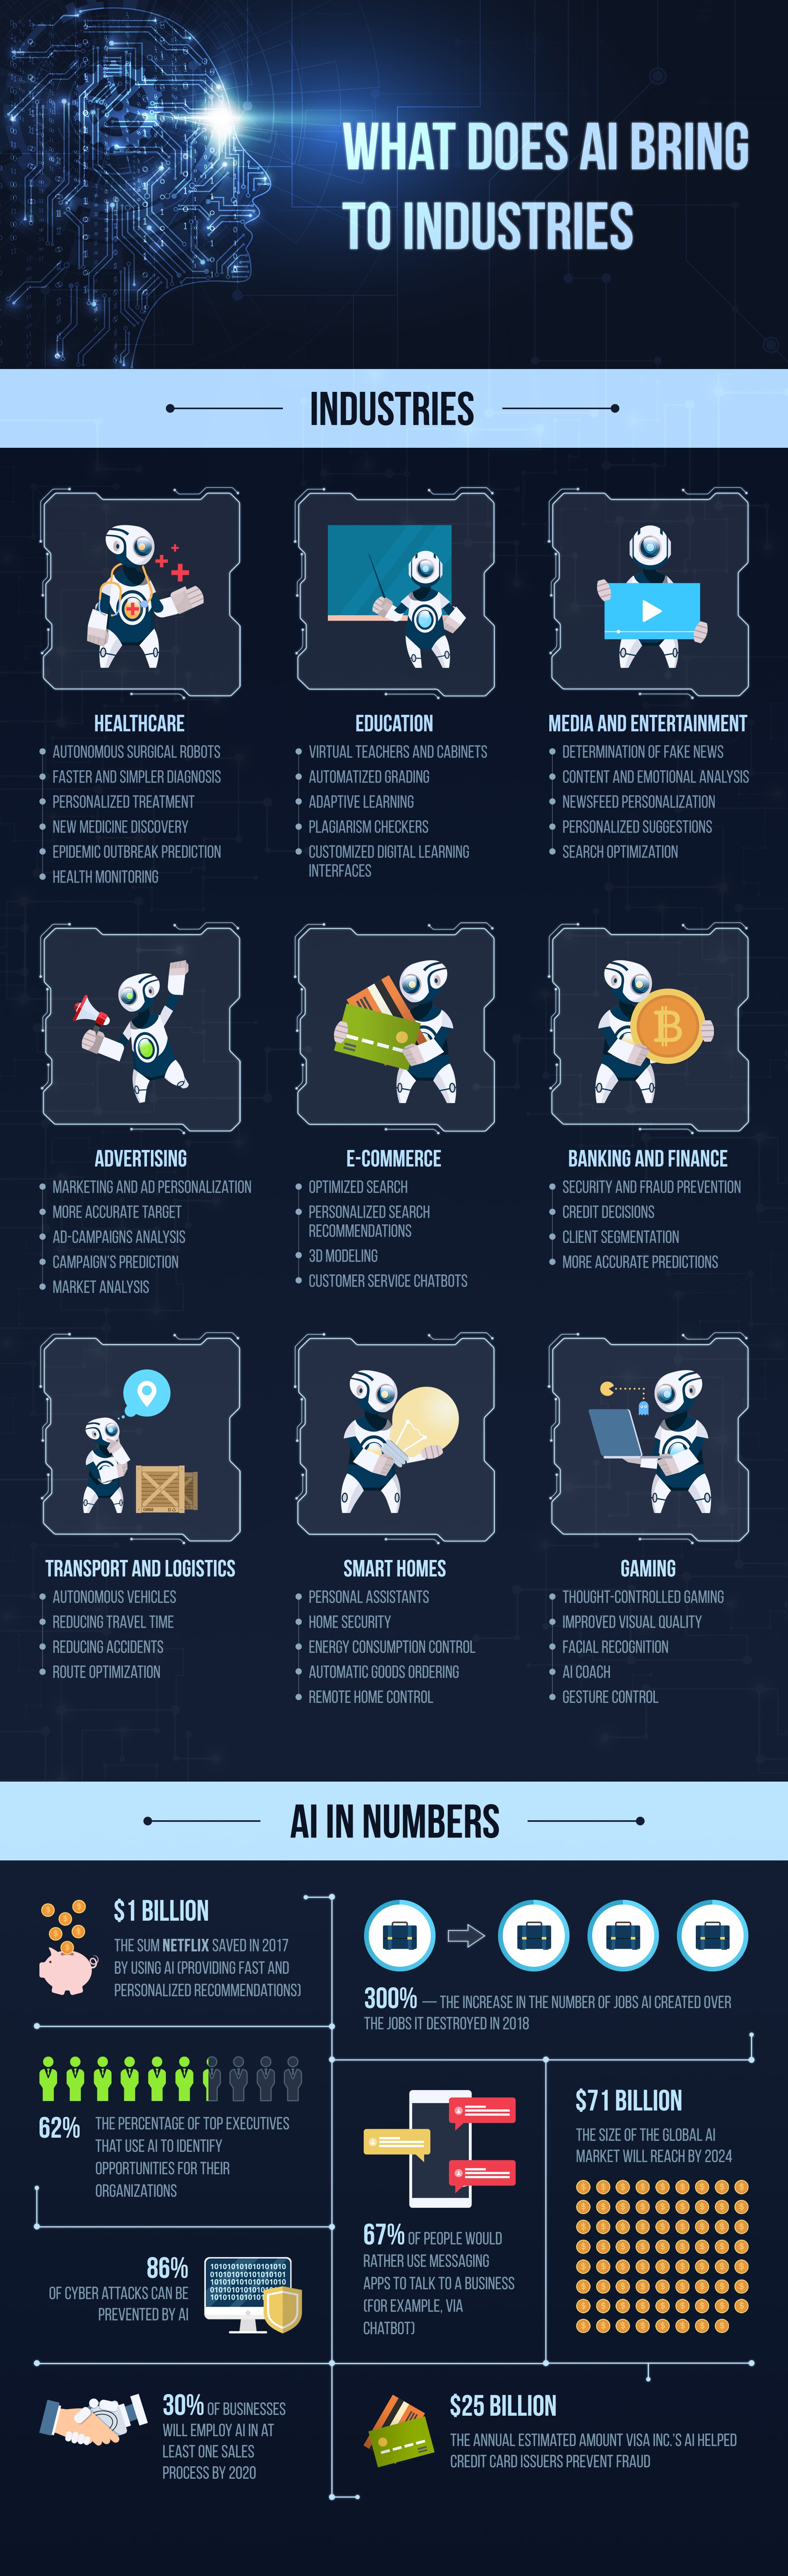 Artificial Intelligence in Business - benefits, uses, applications - Infographic